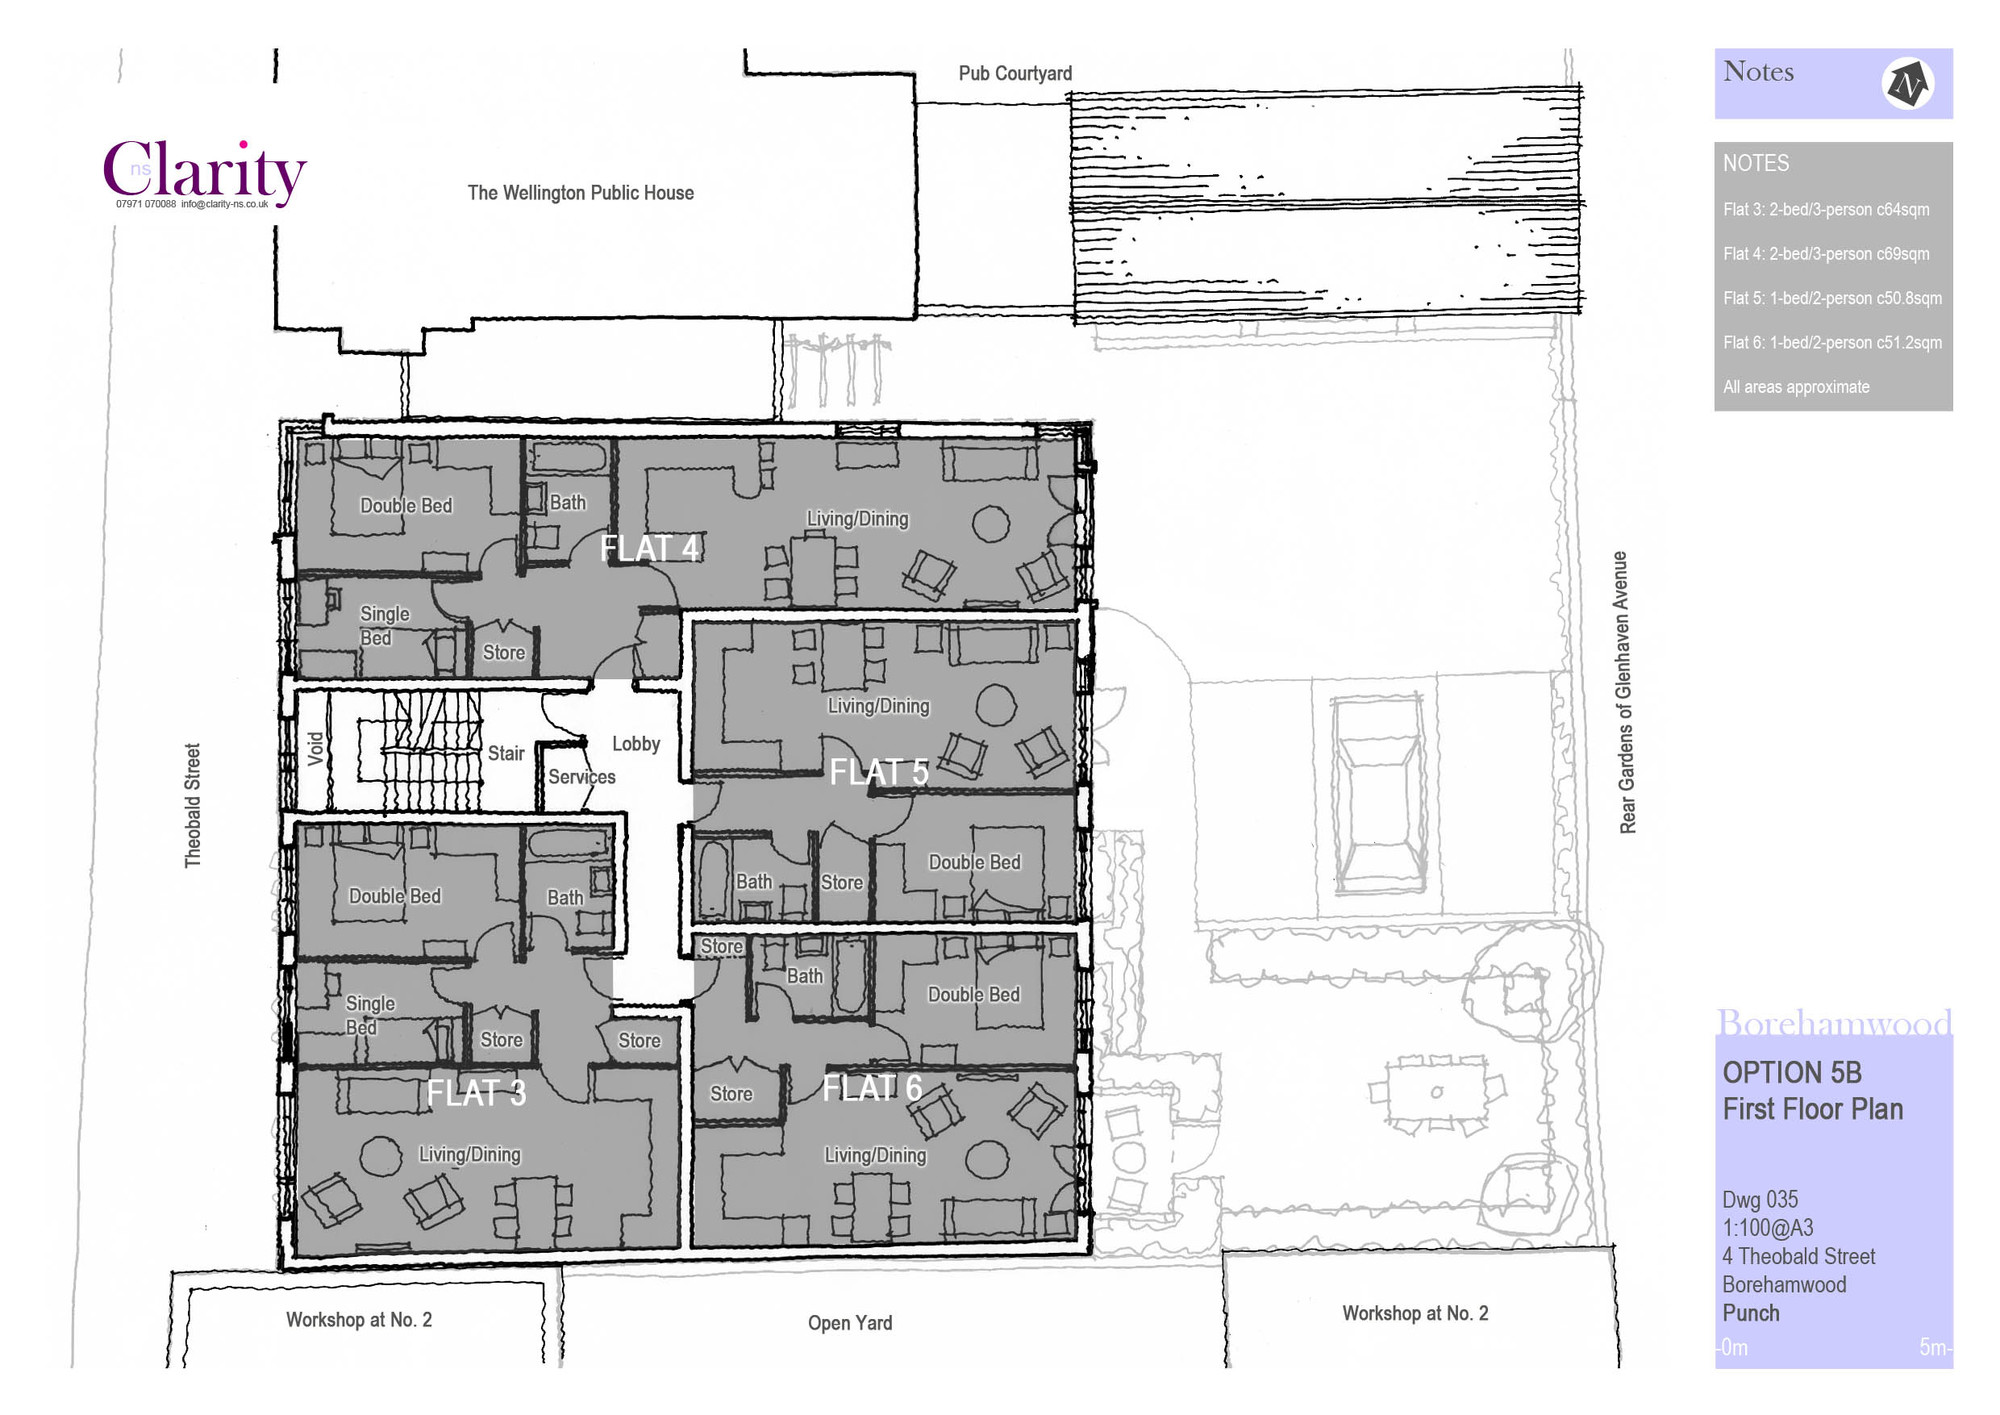 035 option 5b first floor plan